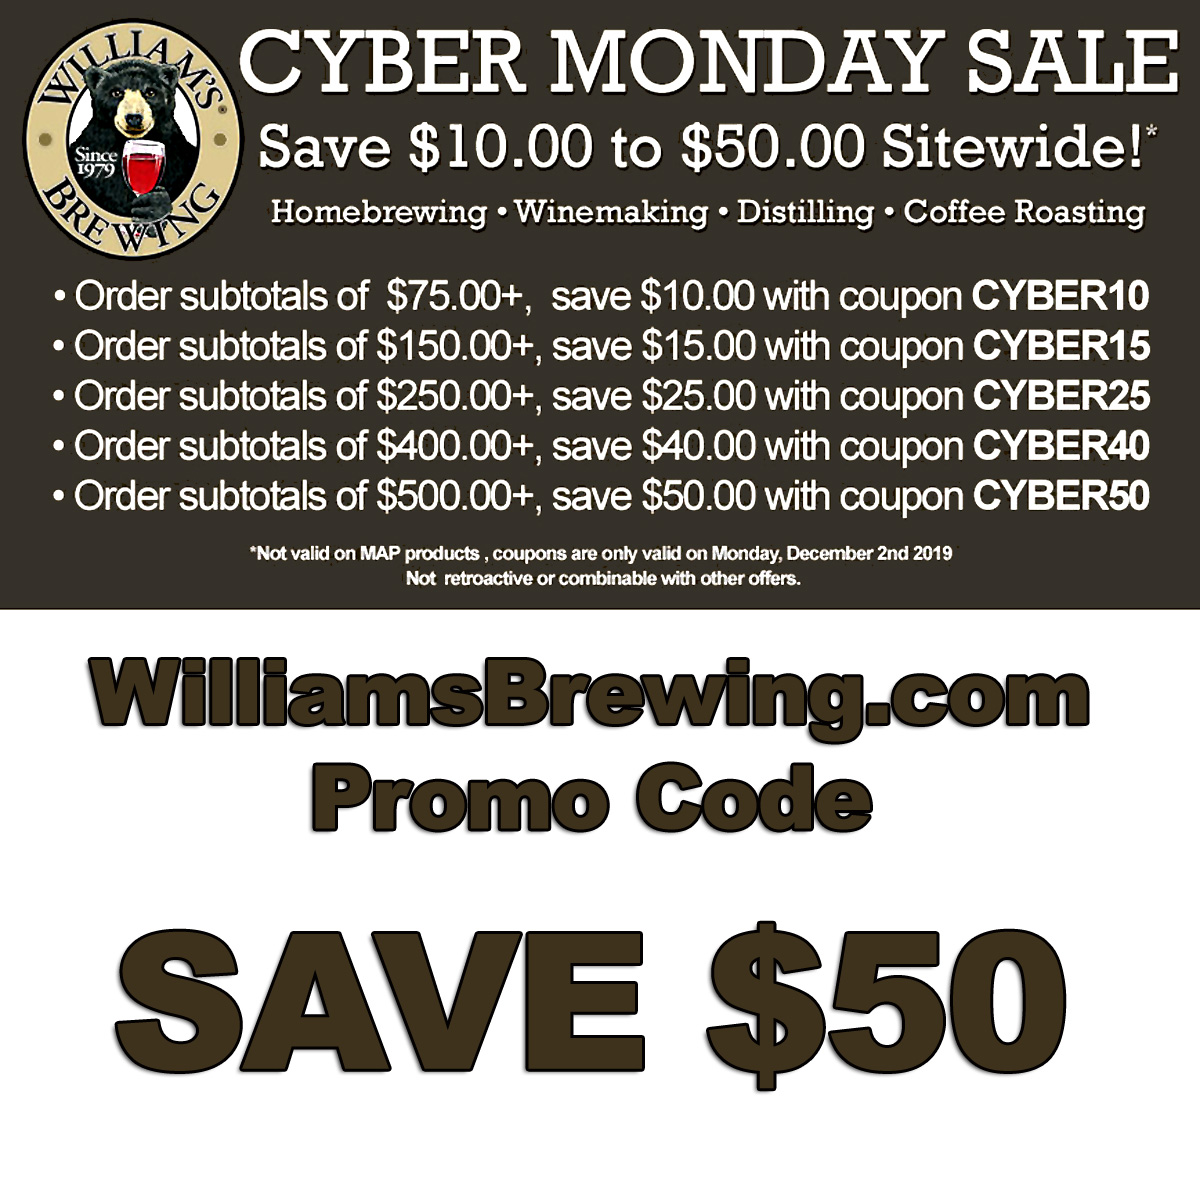 Home Wine Making Coupon Codes for Save $50 this Cyber Monday at WilliamsBrewing.com with this Williams Brewing Promo Code Coupon Code